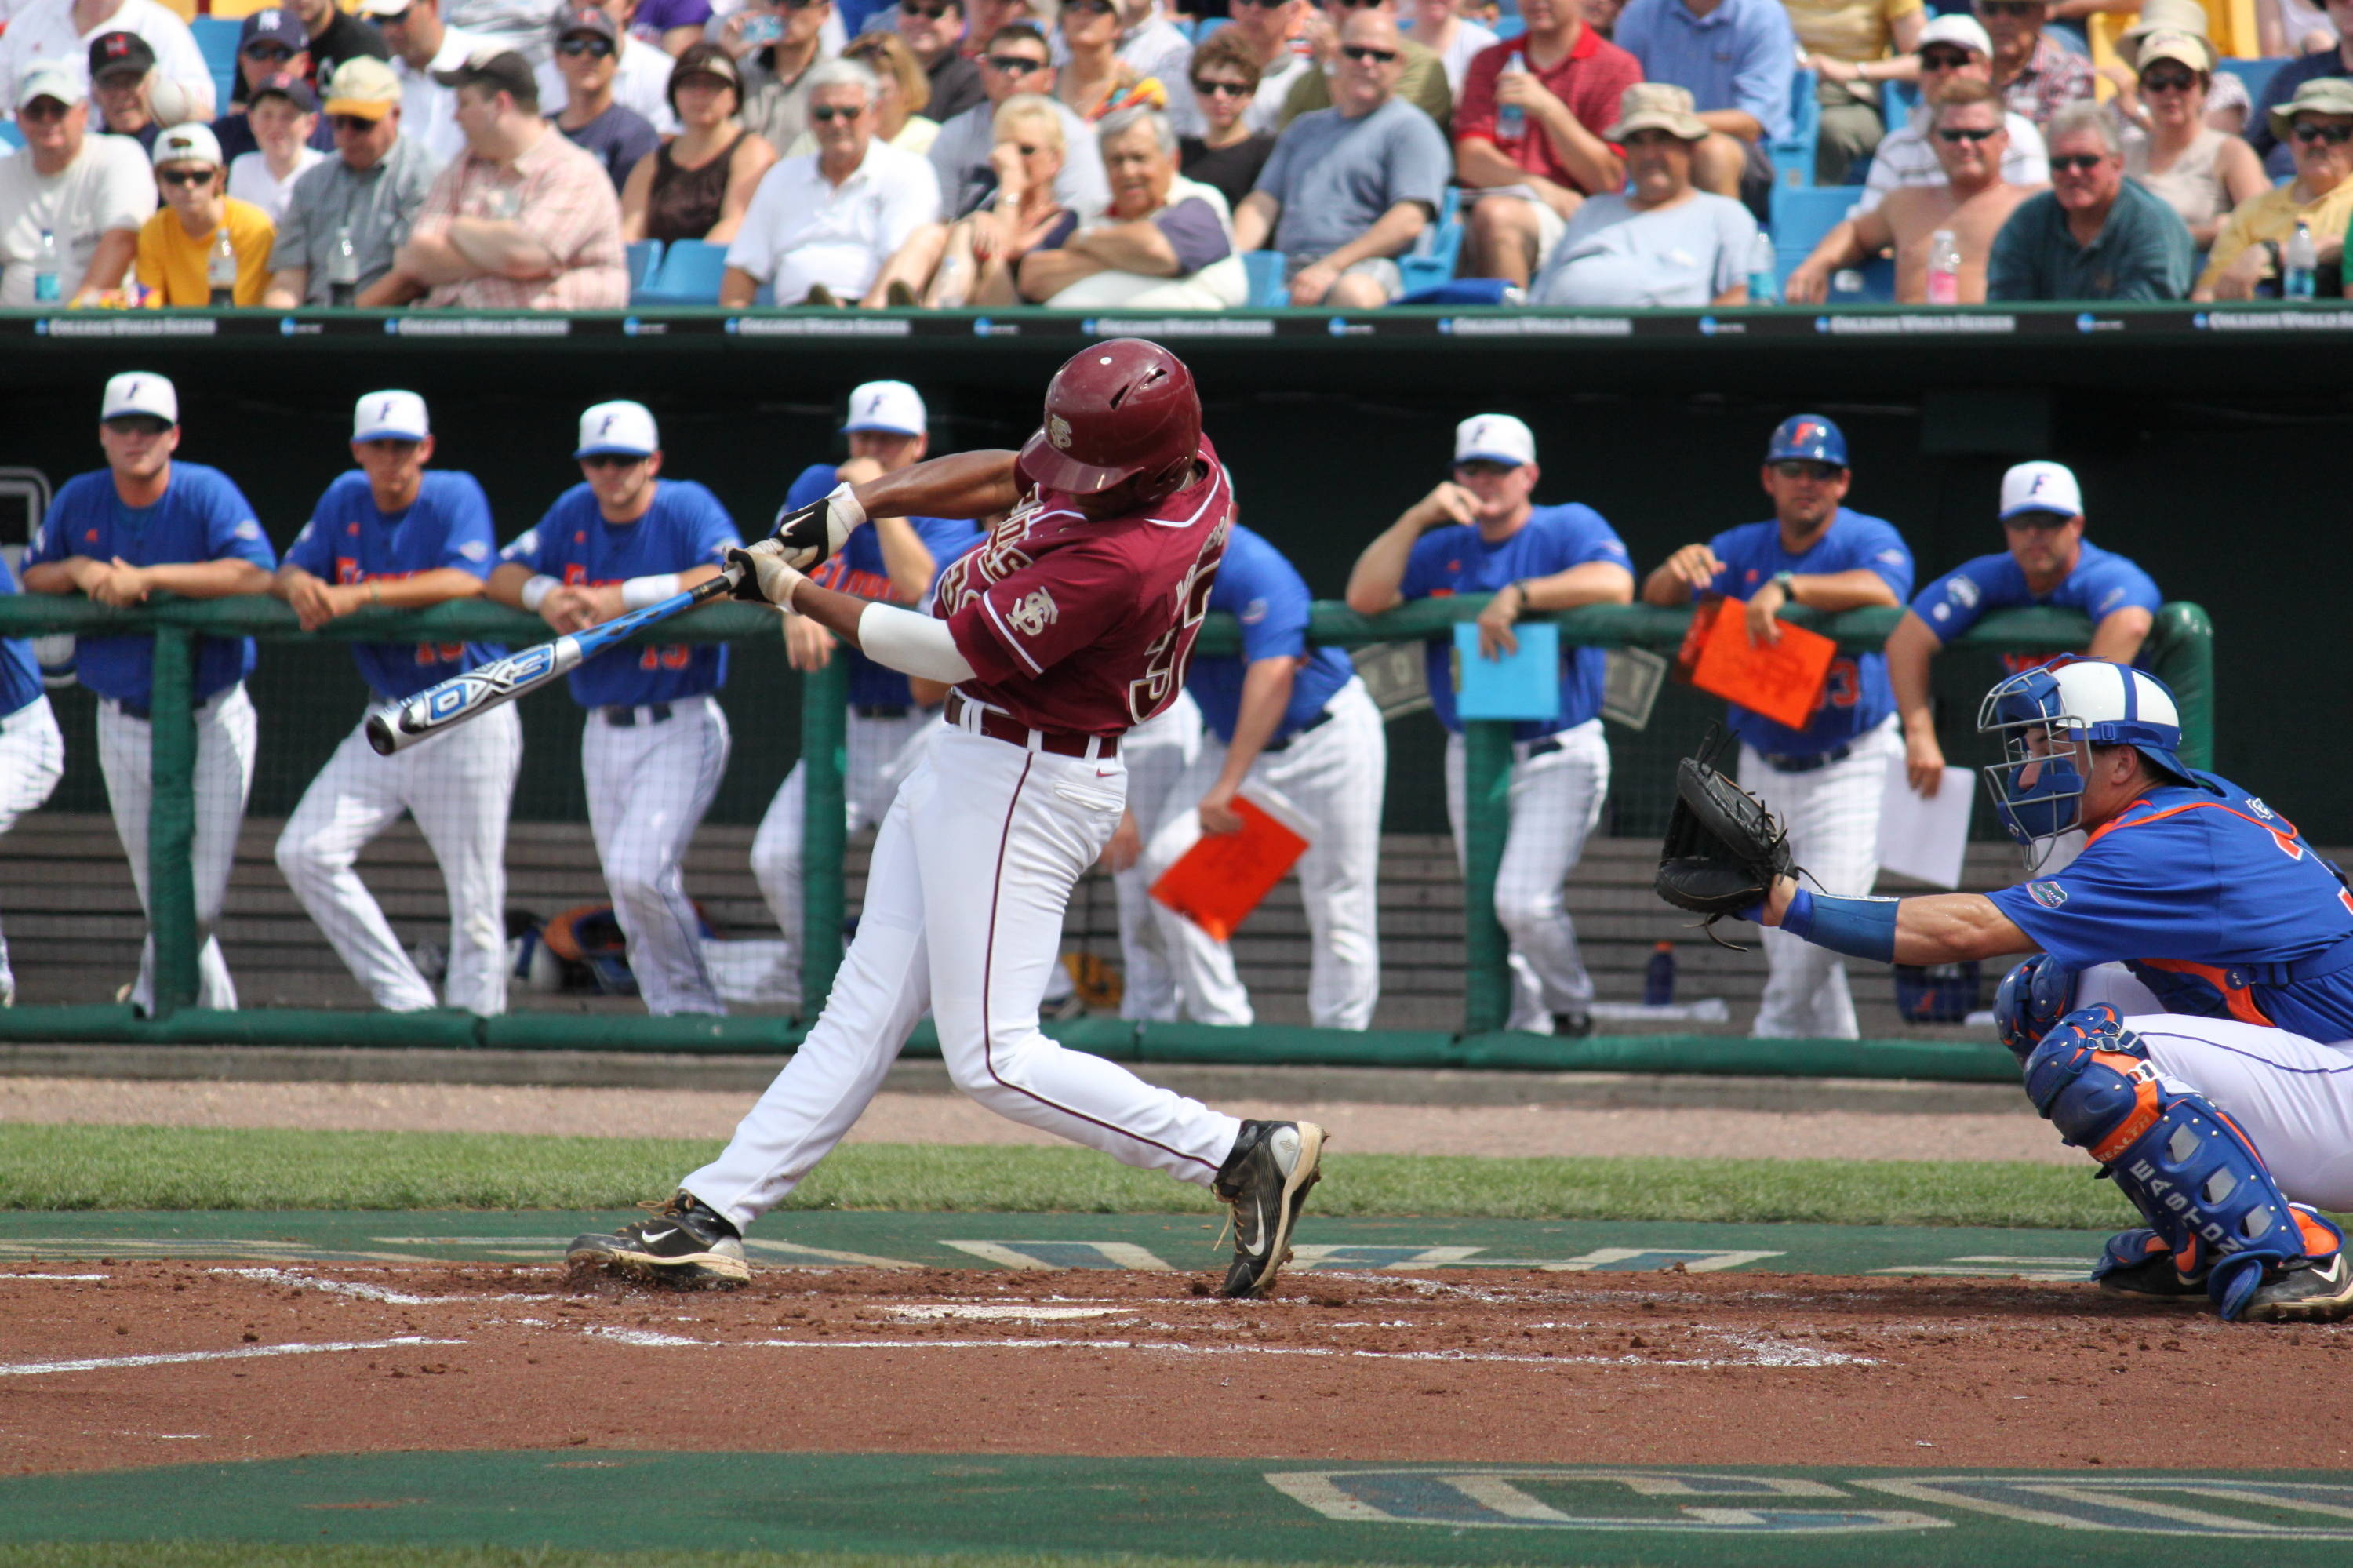 2010 College World Series Victory Over Florida